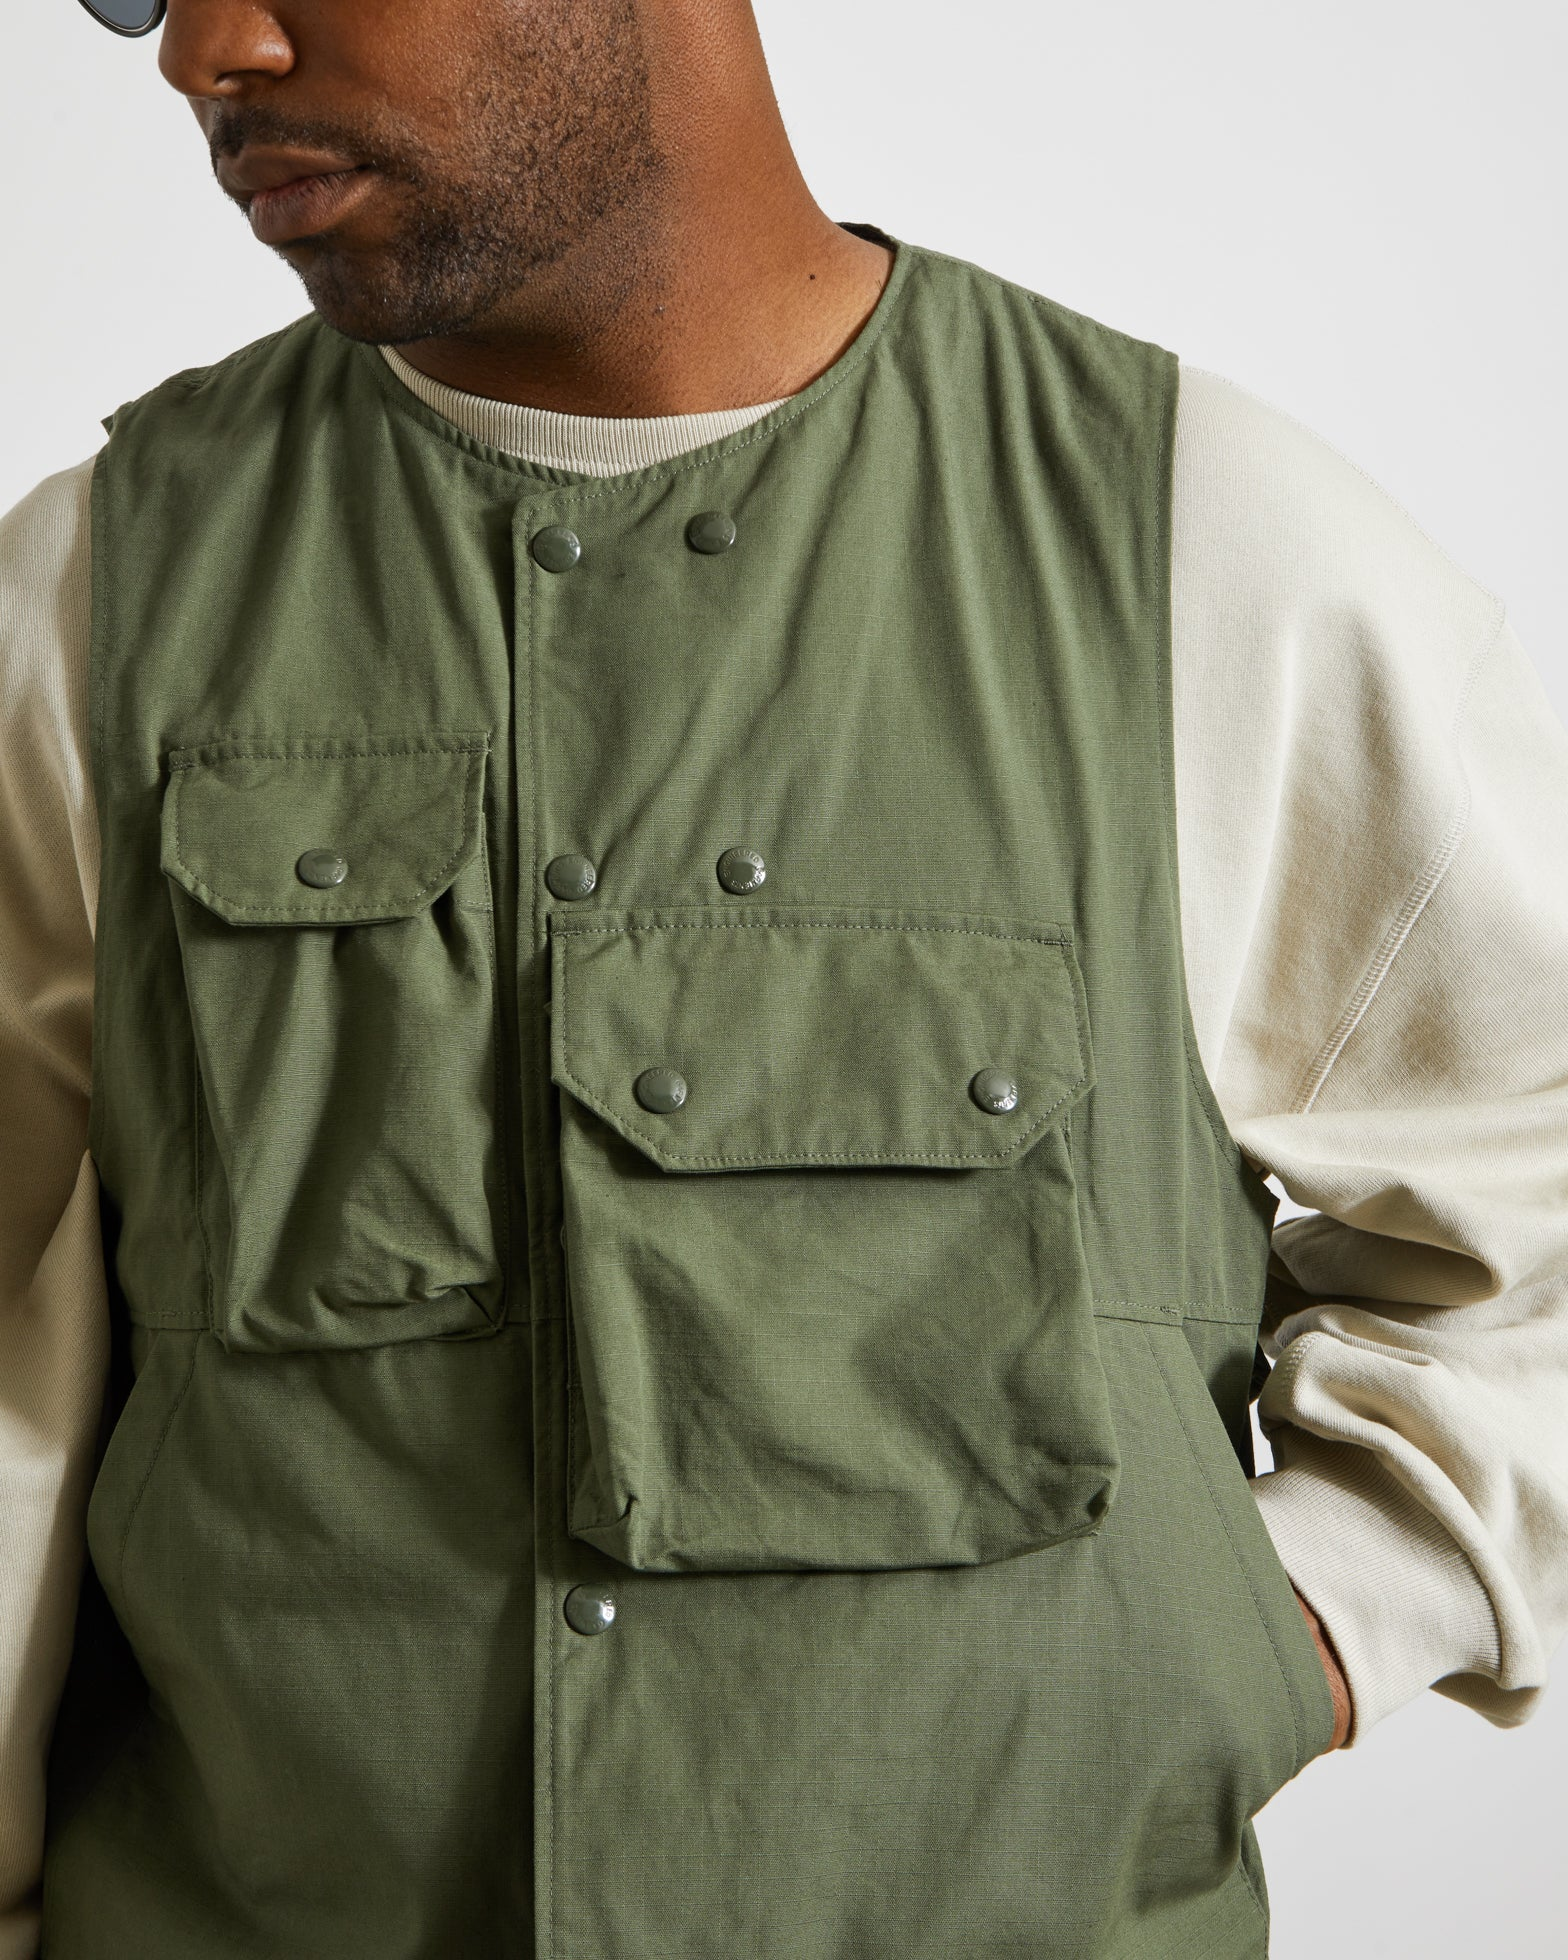 Ripstop Cover Vest in Olive